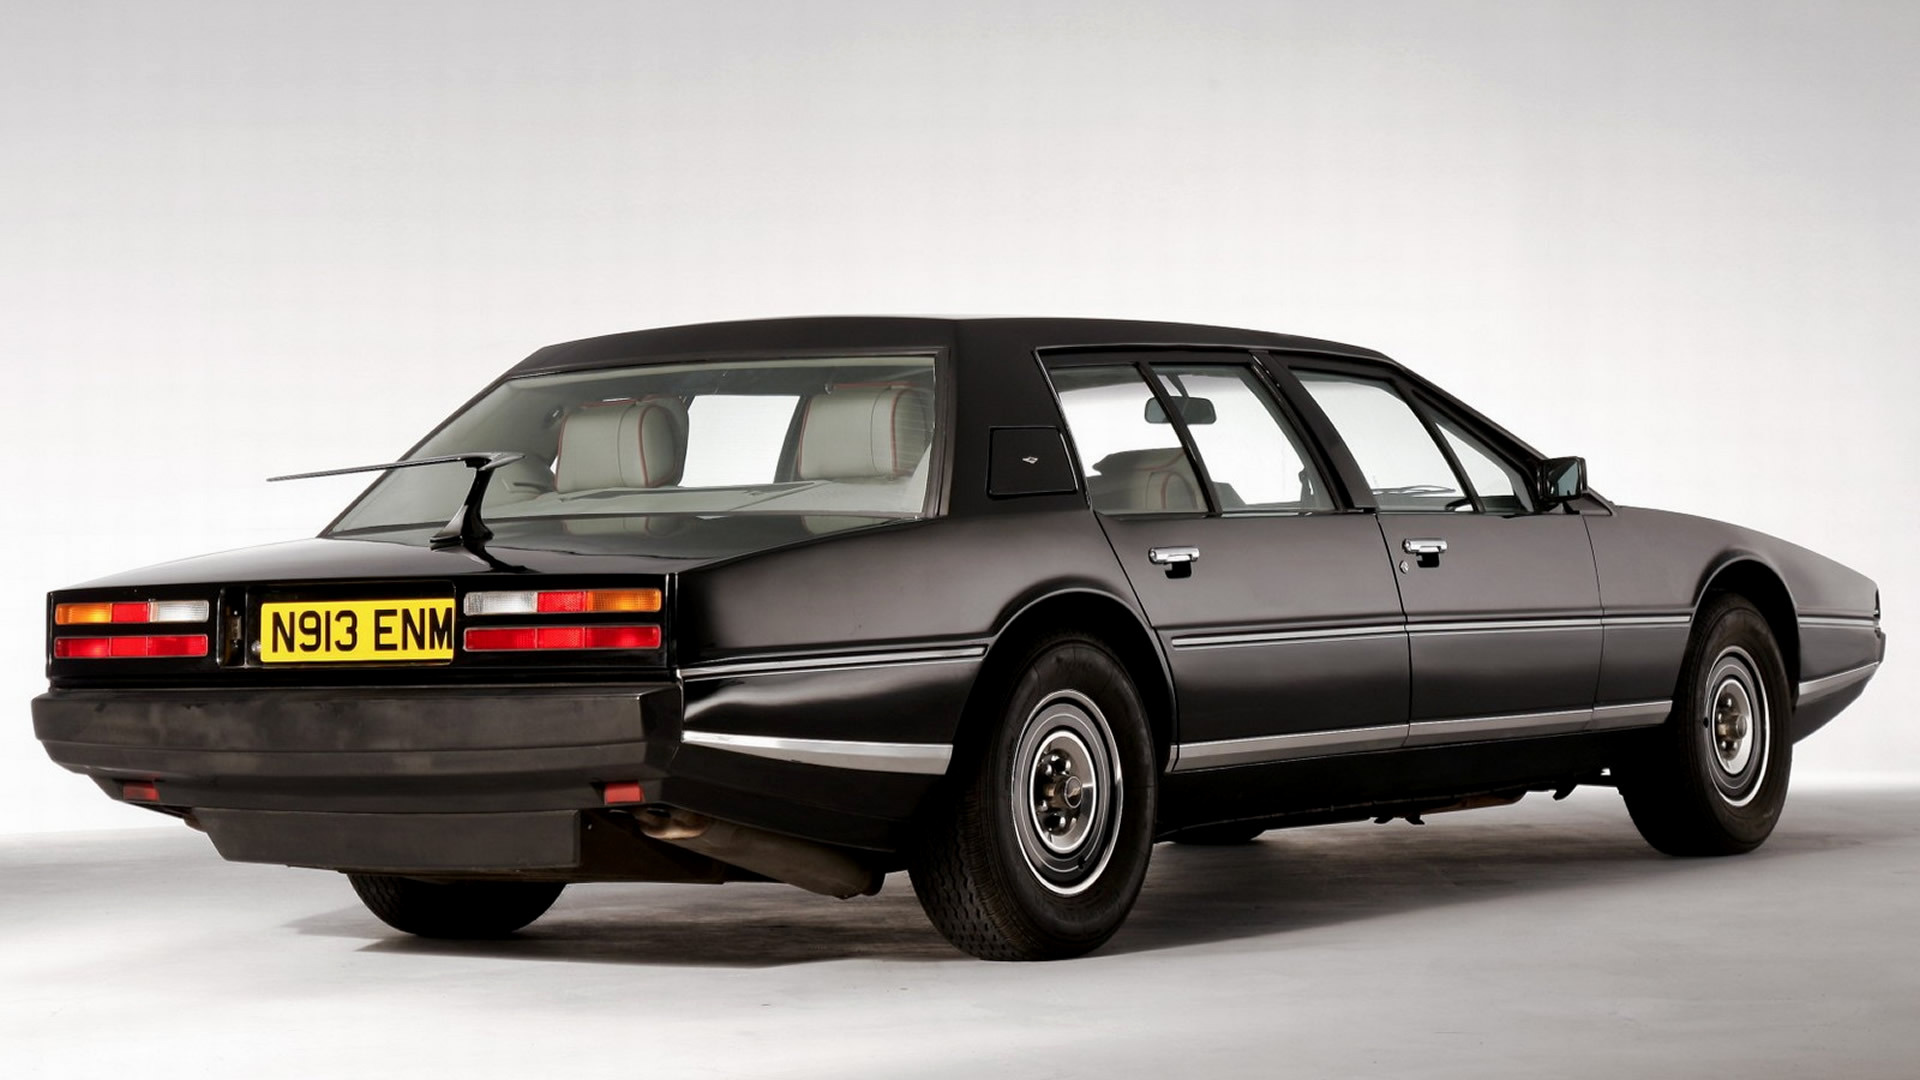 Limousine Car Wallpaper 1984 Tickford Lagonda Limousine Wallpapers And Hd Images